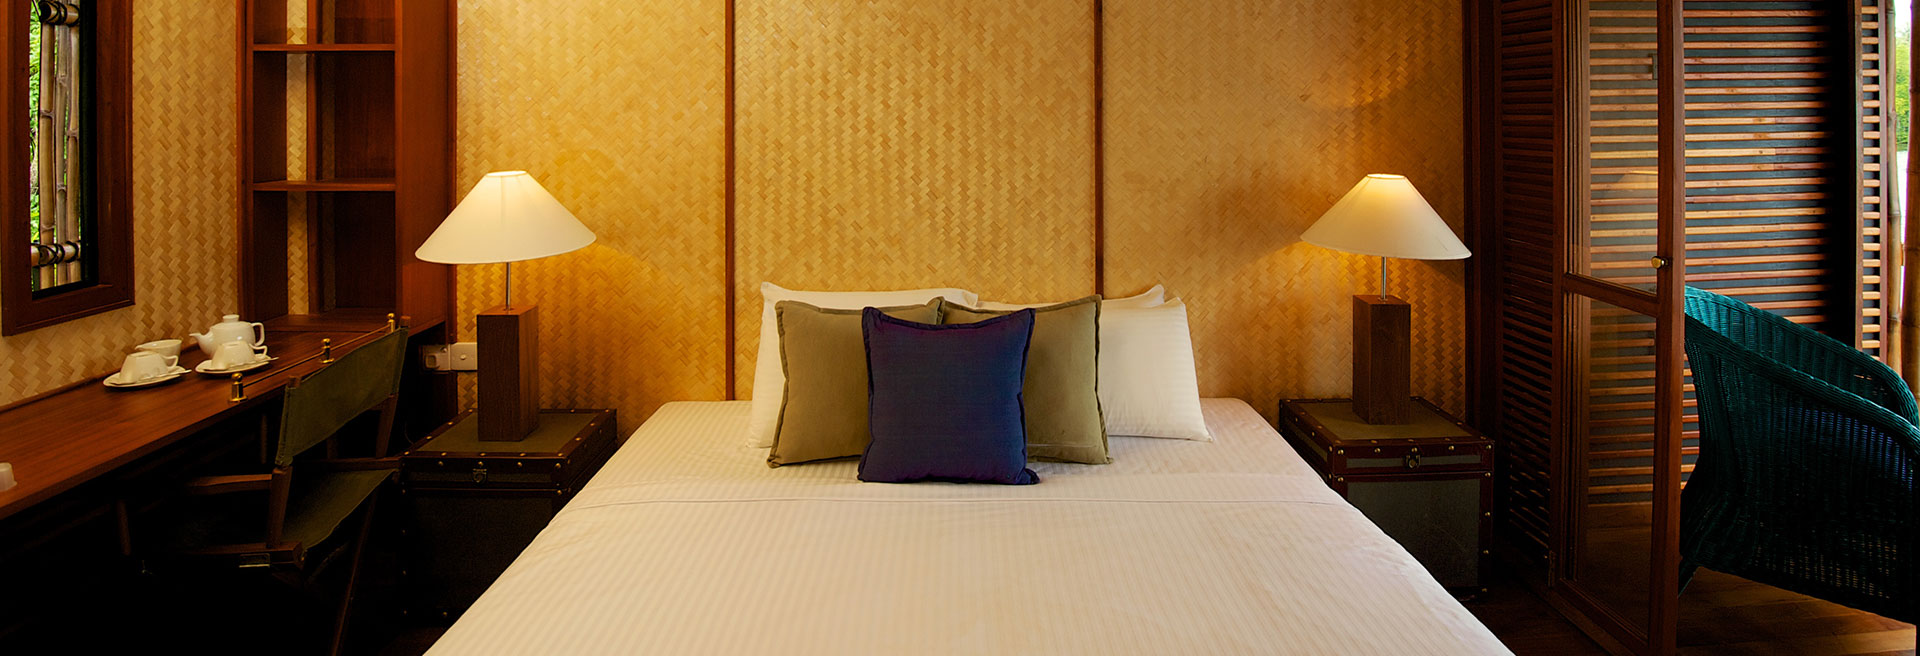 Blue and green pillows on the bed